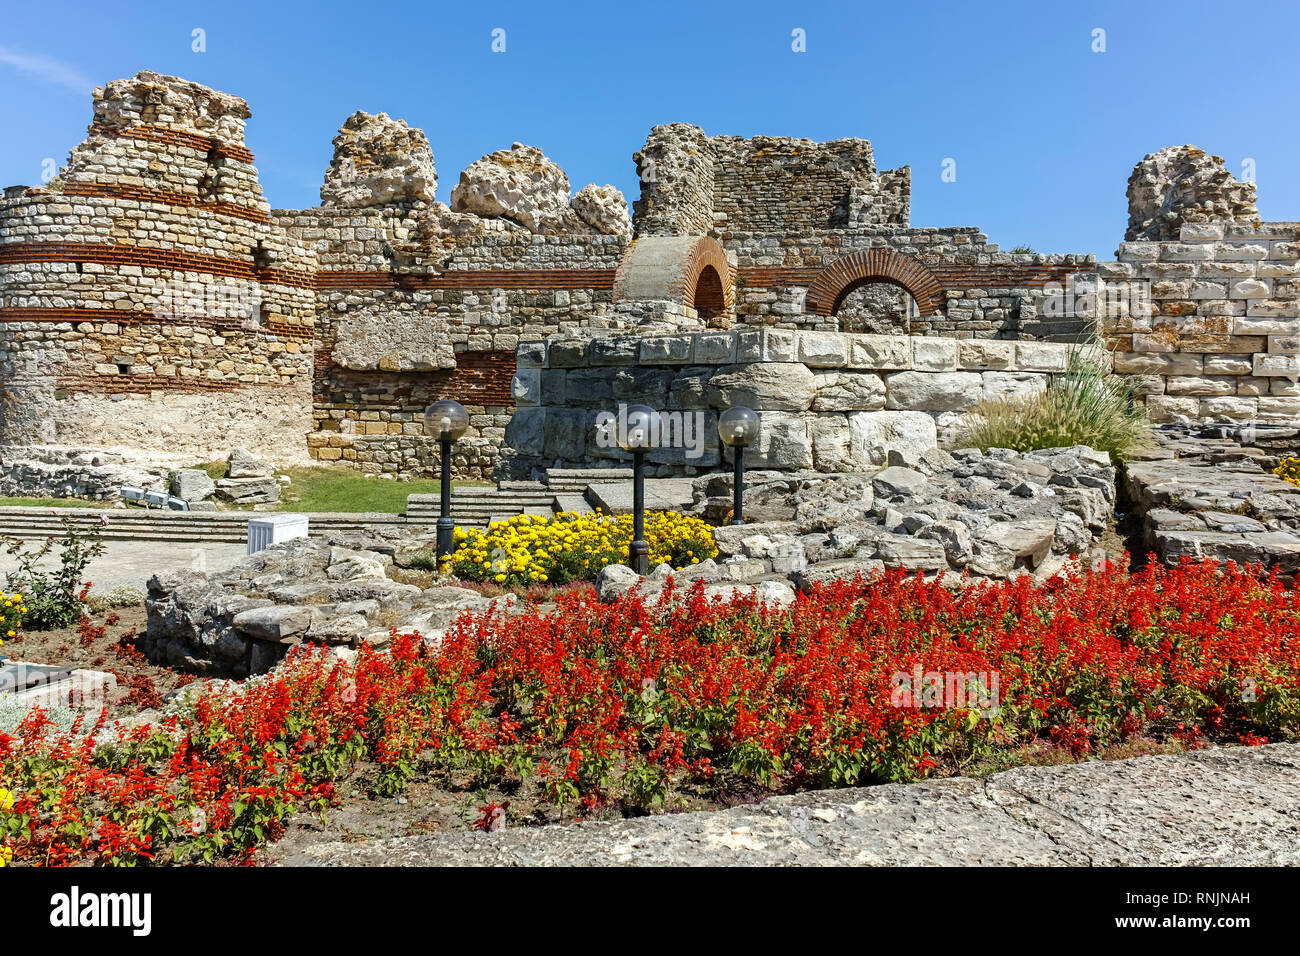 NESSEBAR, BULGARIA - AUGUST 12, 2018: Ancient ruins of Fortifications at the entrance of old town of Nessebar, Burgas Region, Bulgaria - Stock Image